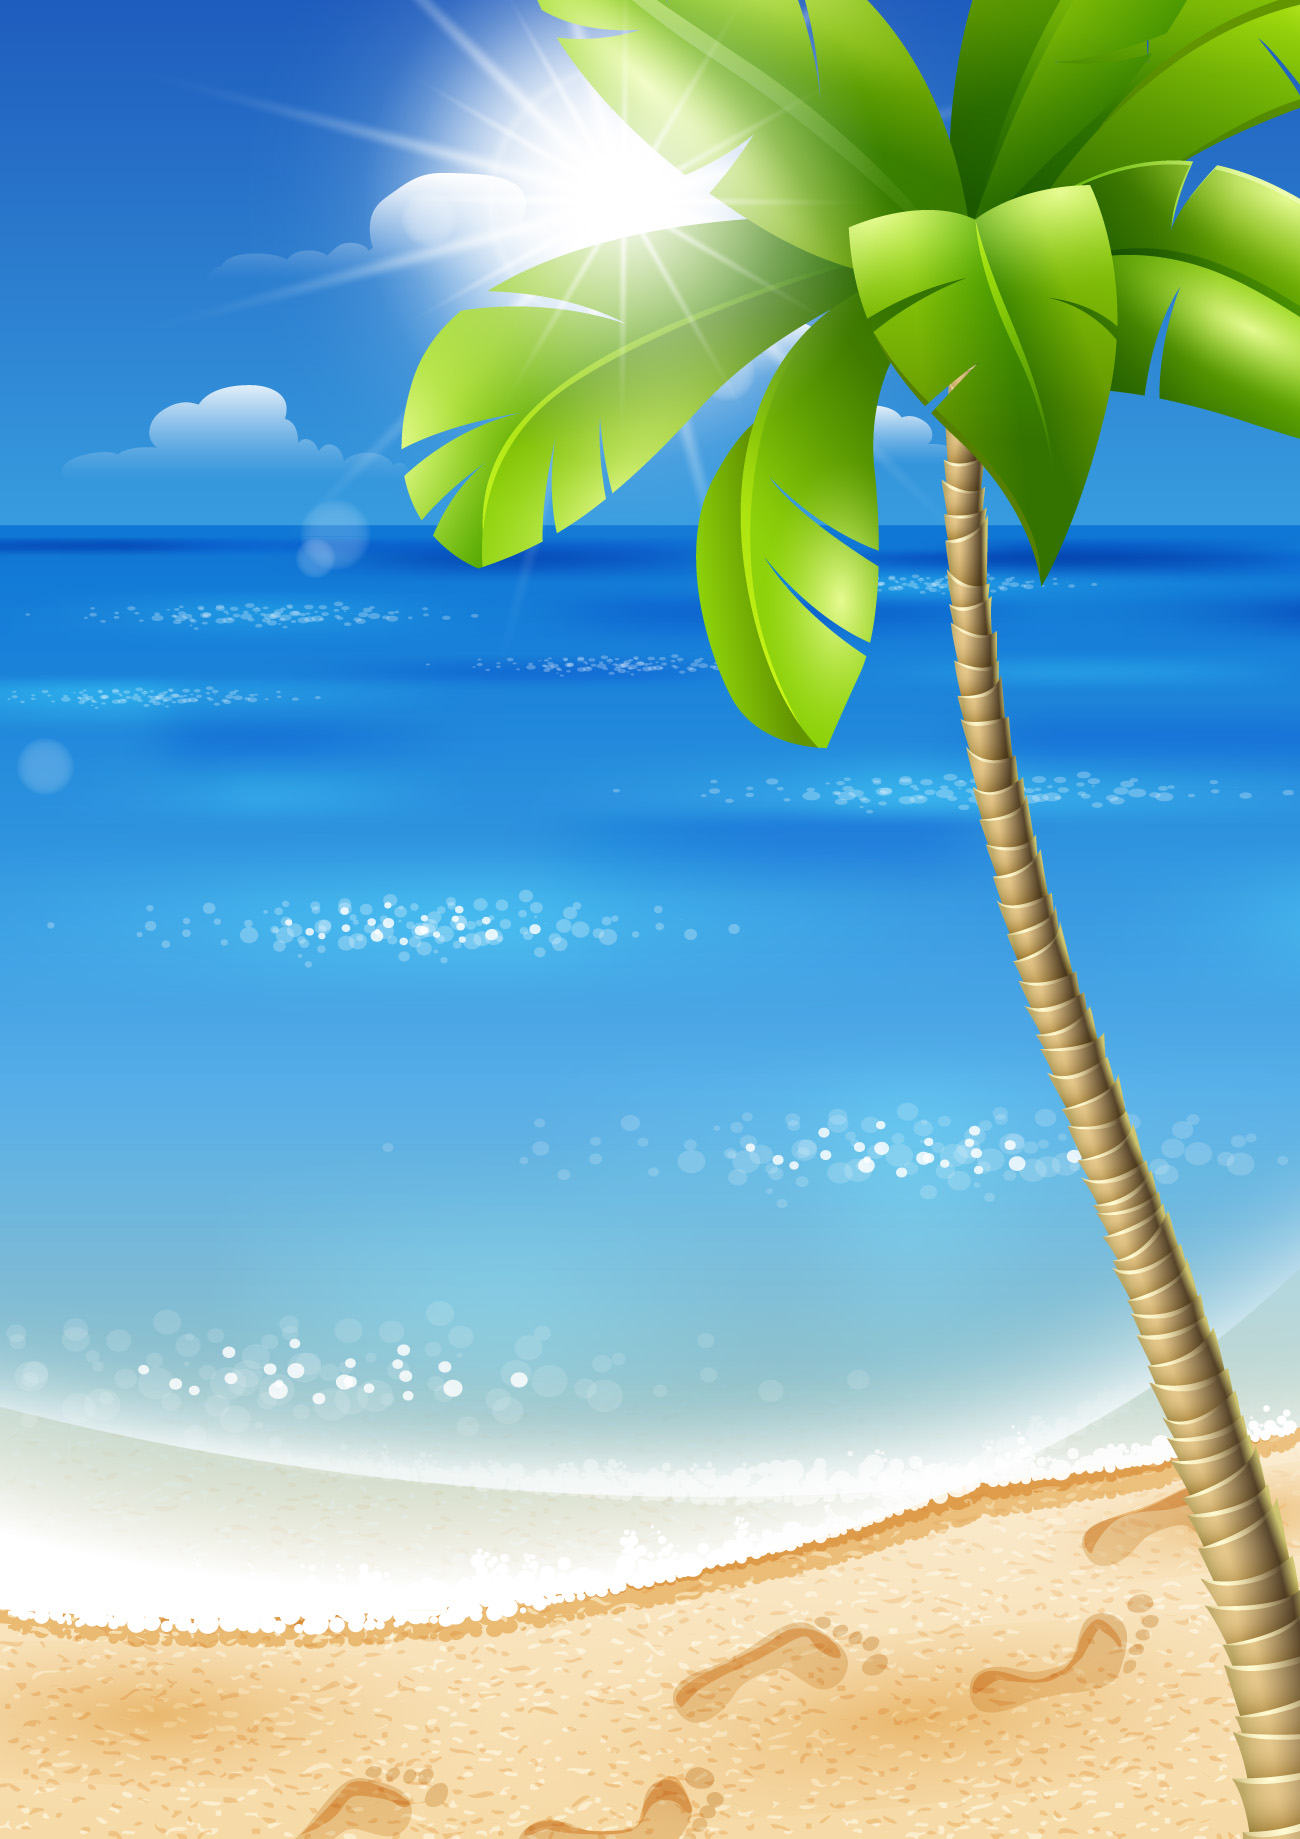 Beautiful Tropical Backgrounds vector 02  Free download